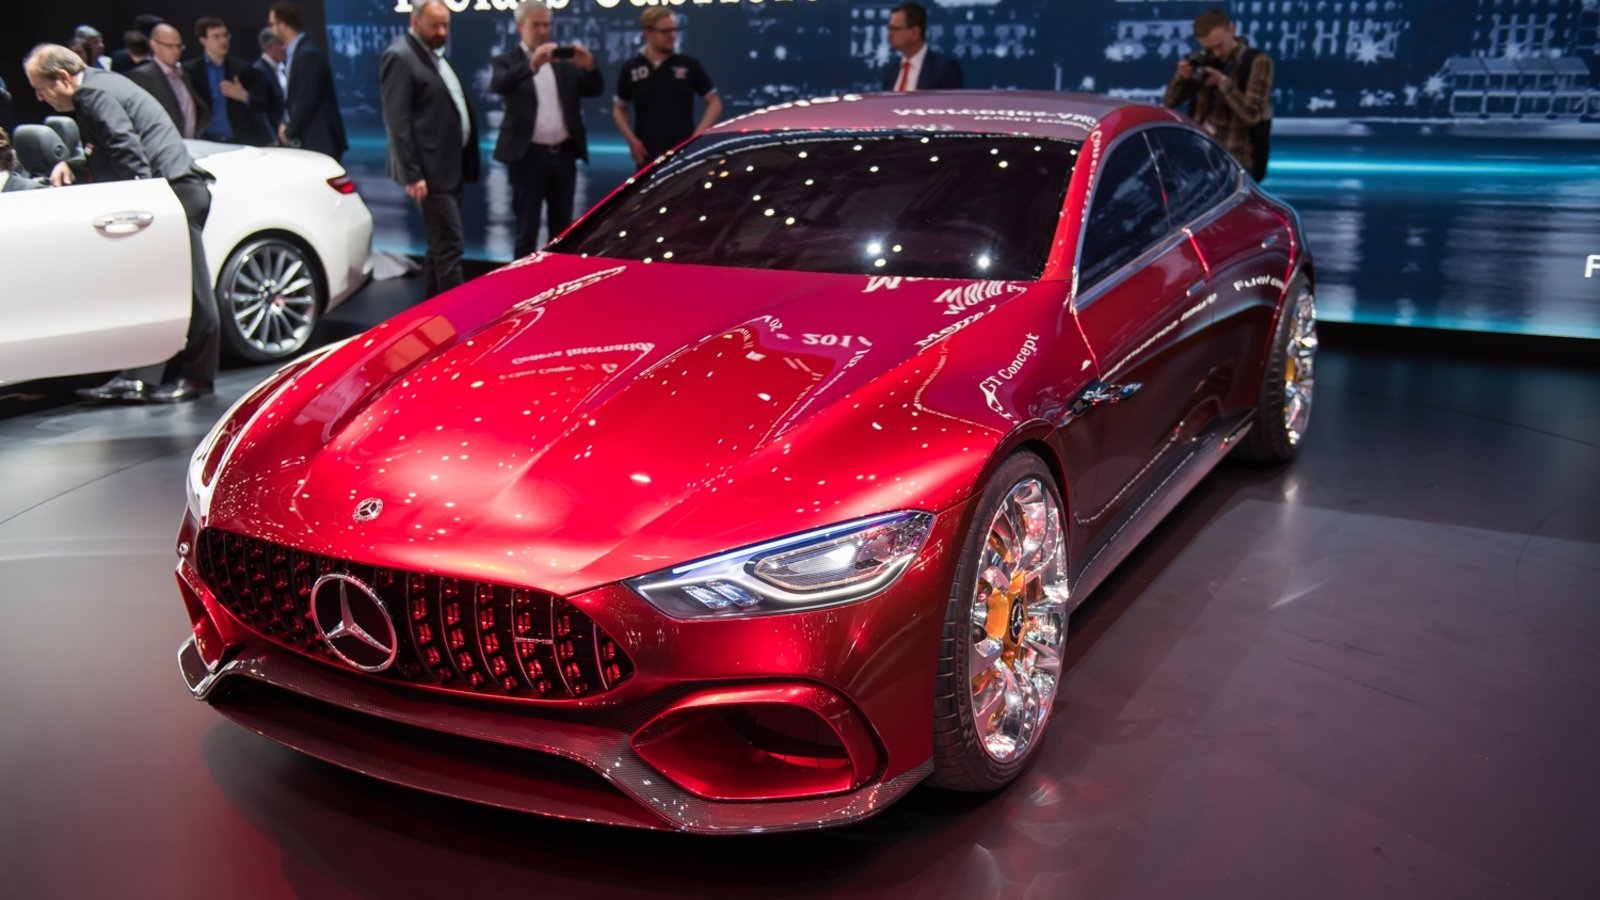 2017 Mercedes-AMG GT Concept Review - Gallery - Top Speed